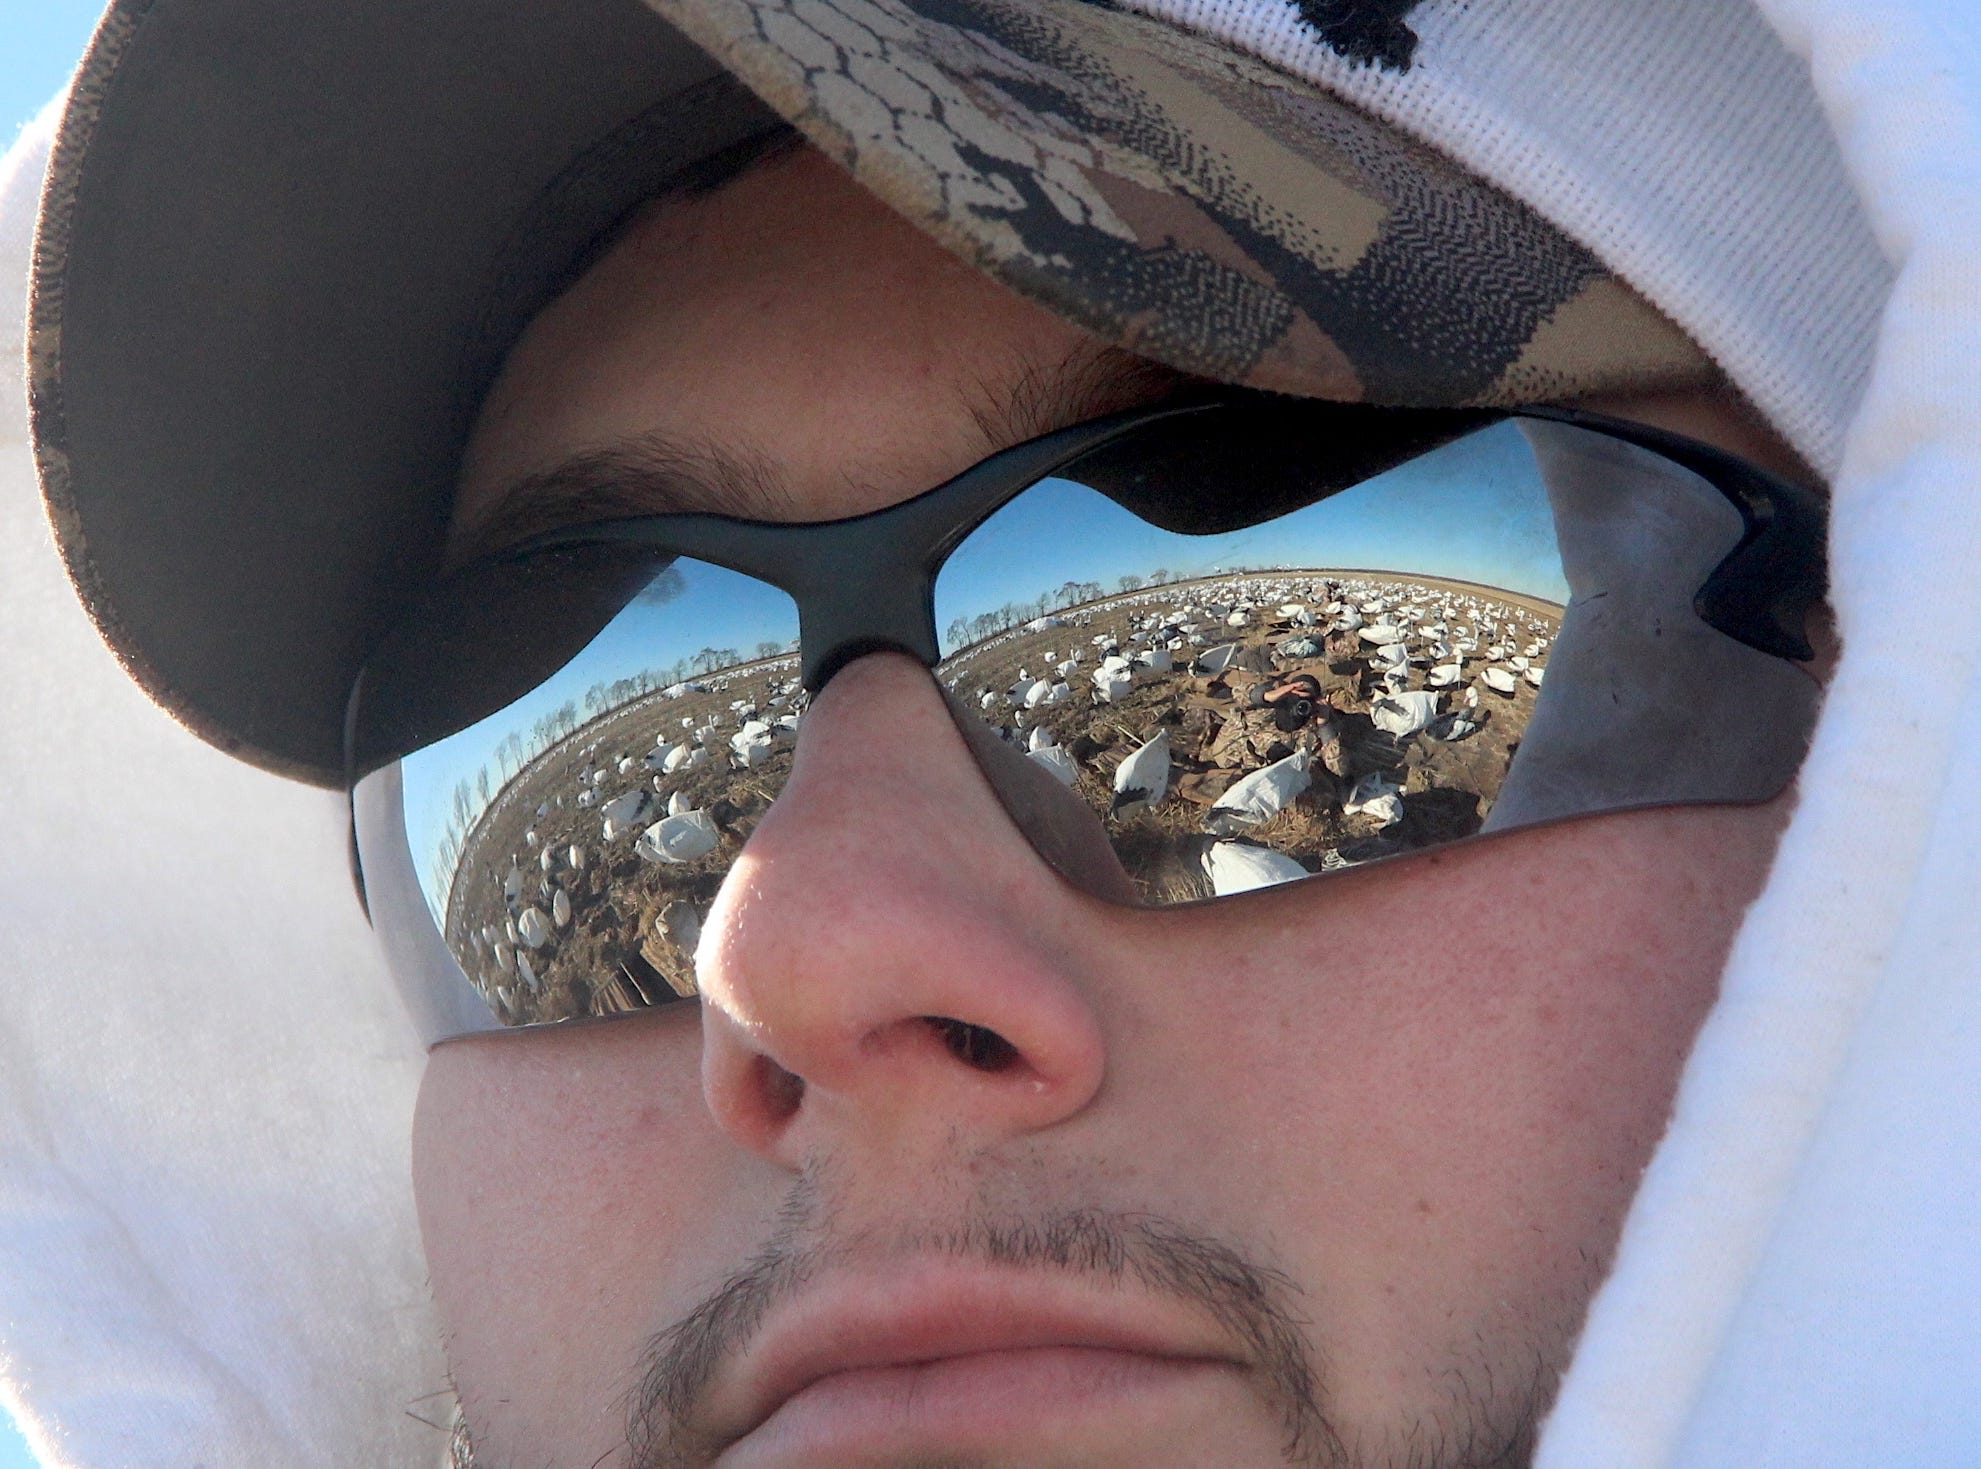 The spread of decoys and photographer are reflected in sunglasses worn by Conner Shepardson of Kaukauna, Wisconsin.